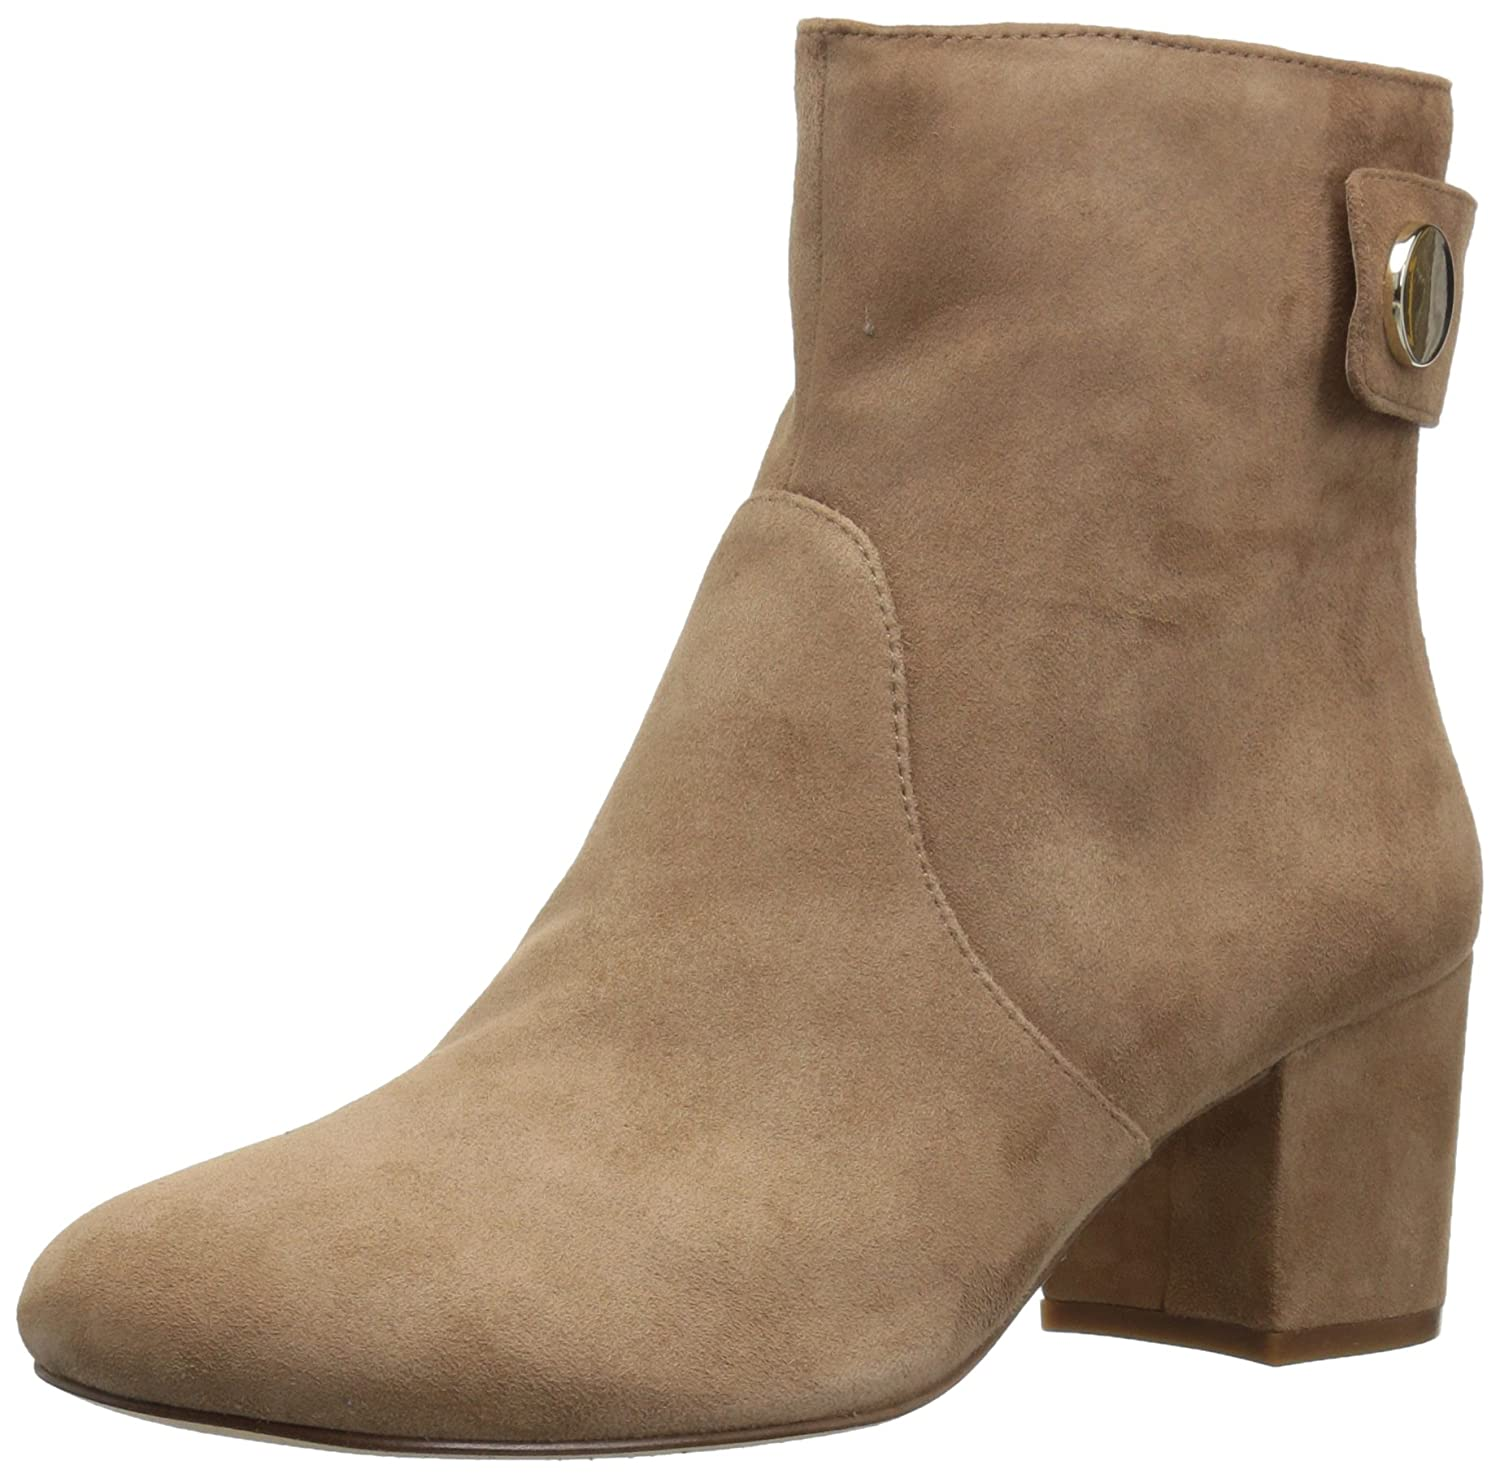 Nine West Women's Quarryn Suede Ankle Boot B01MSUQKDU 9.5 B(M) US|Natural